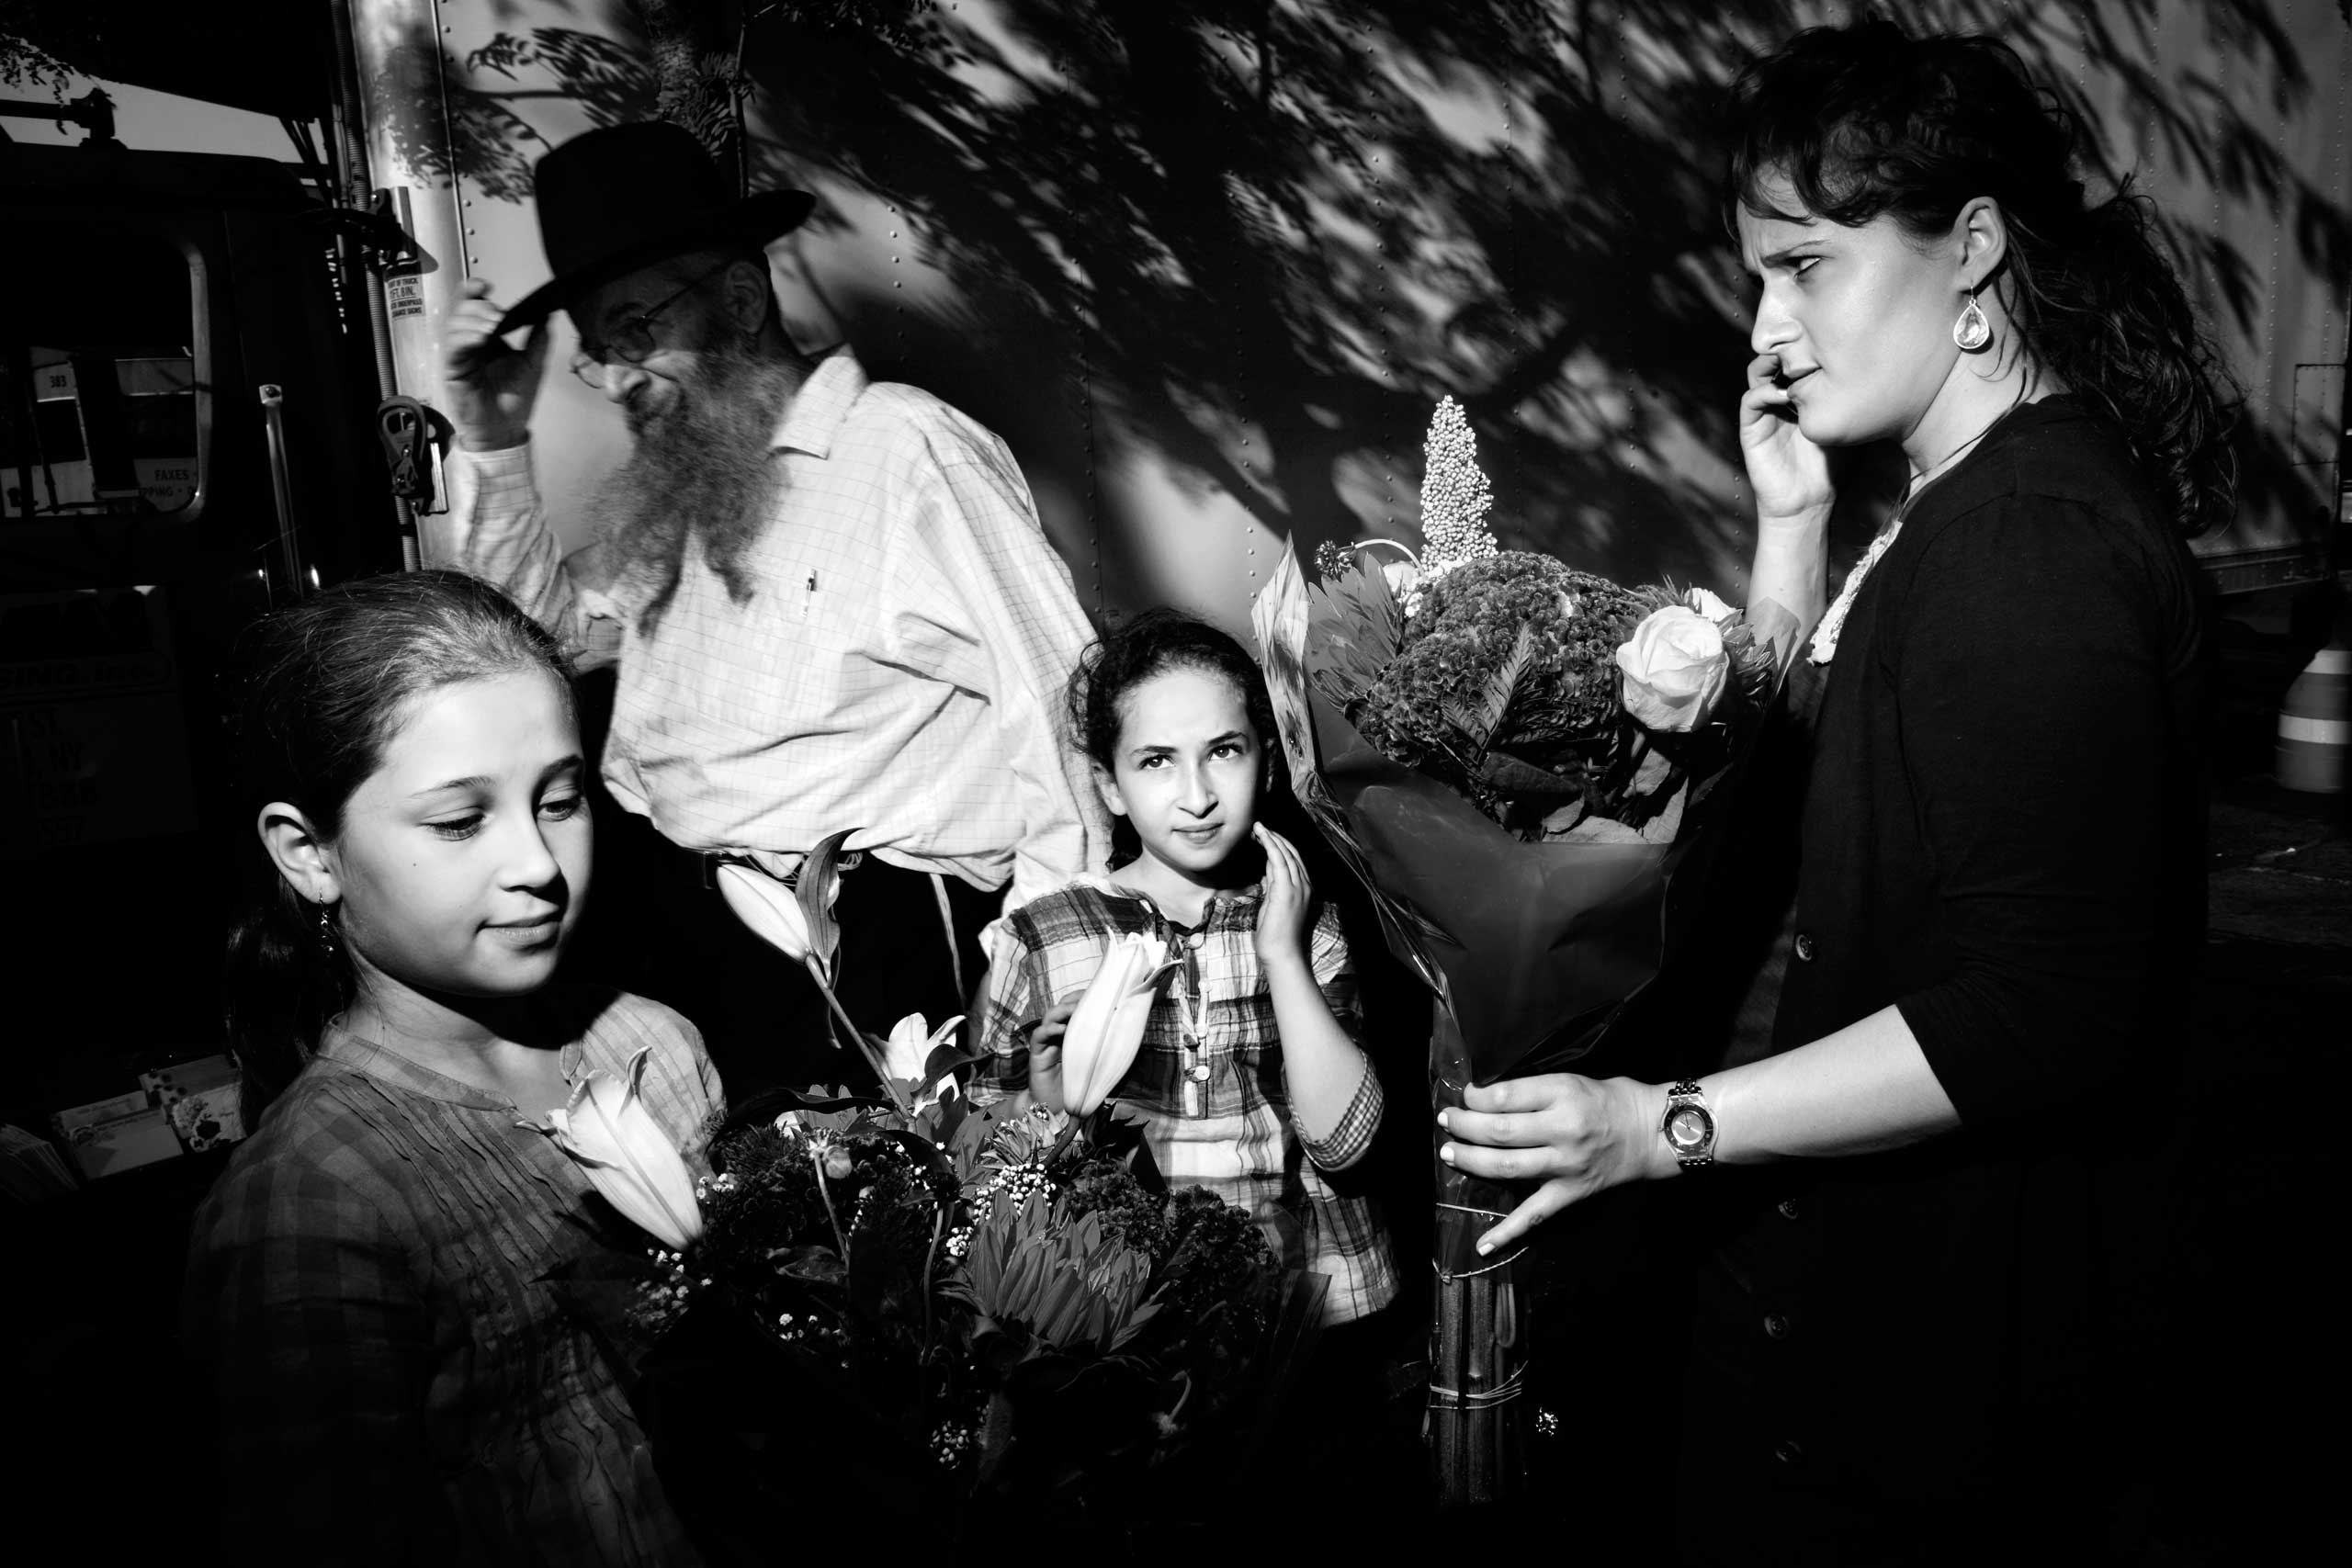 A mother and her two daughthers buys flowers before the beginning of Shabbat on Kingston Avenue, Crown Heights, Brooklyn. Oct. 2010.